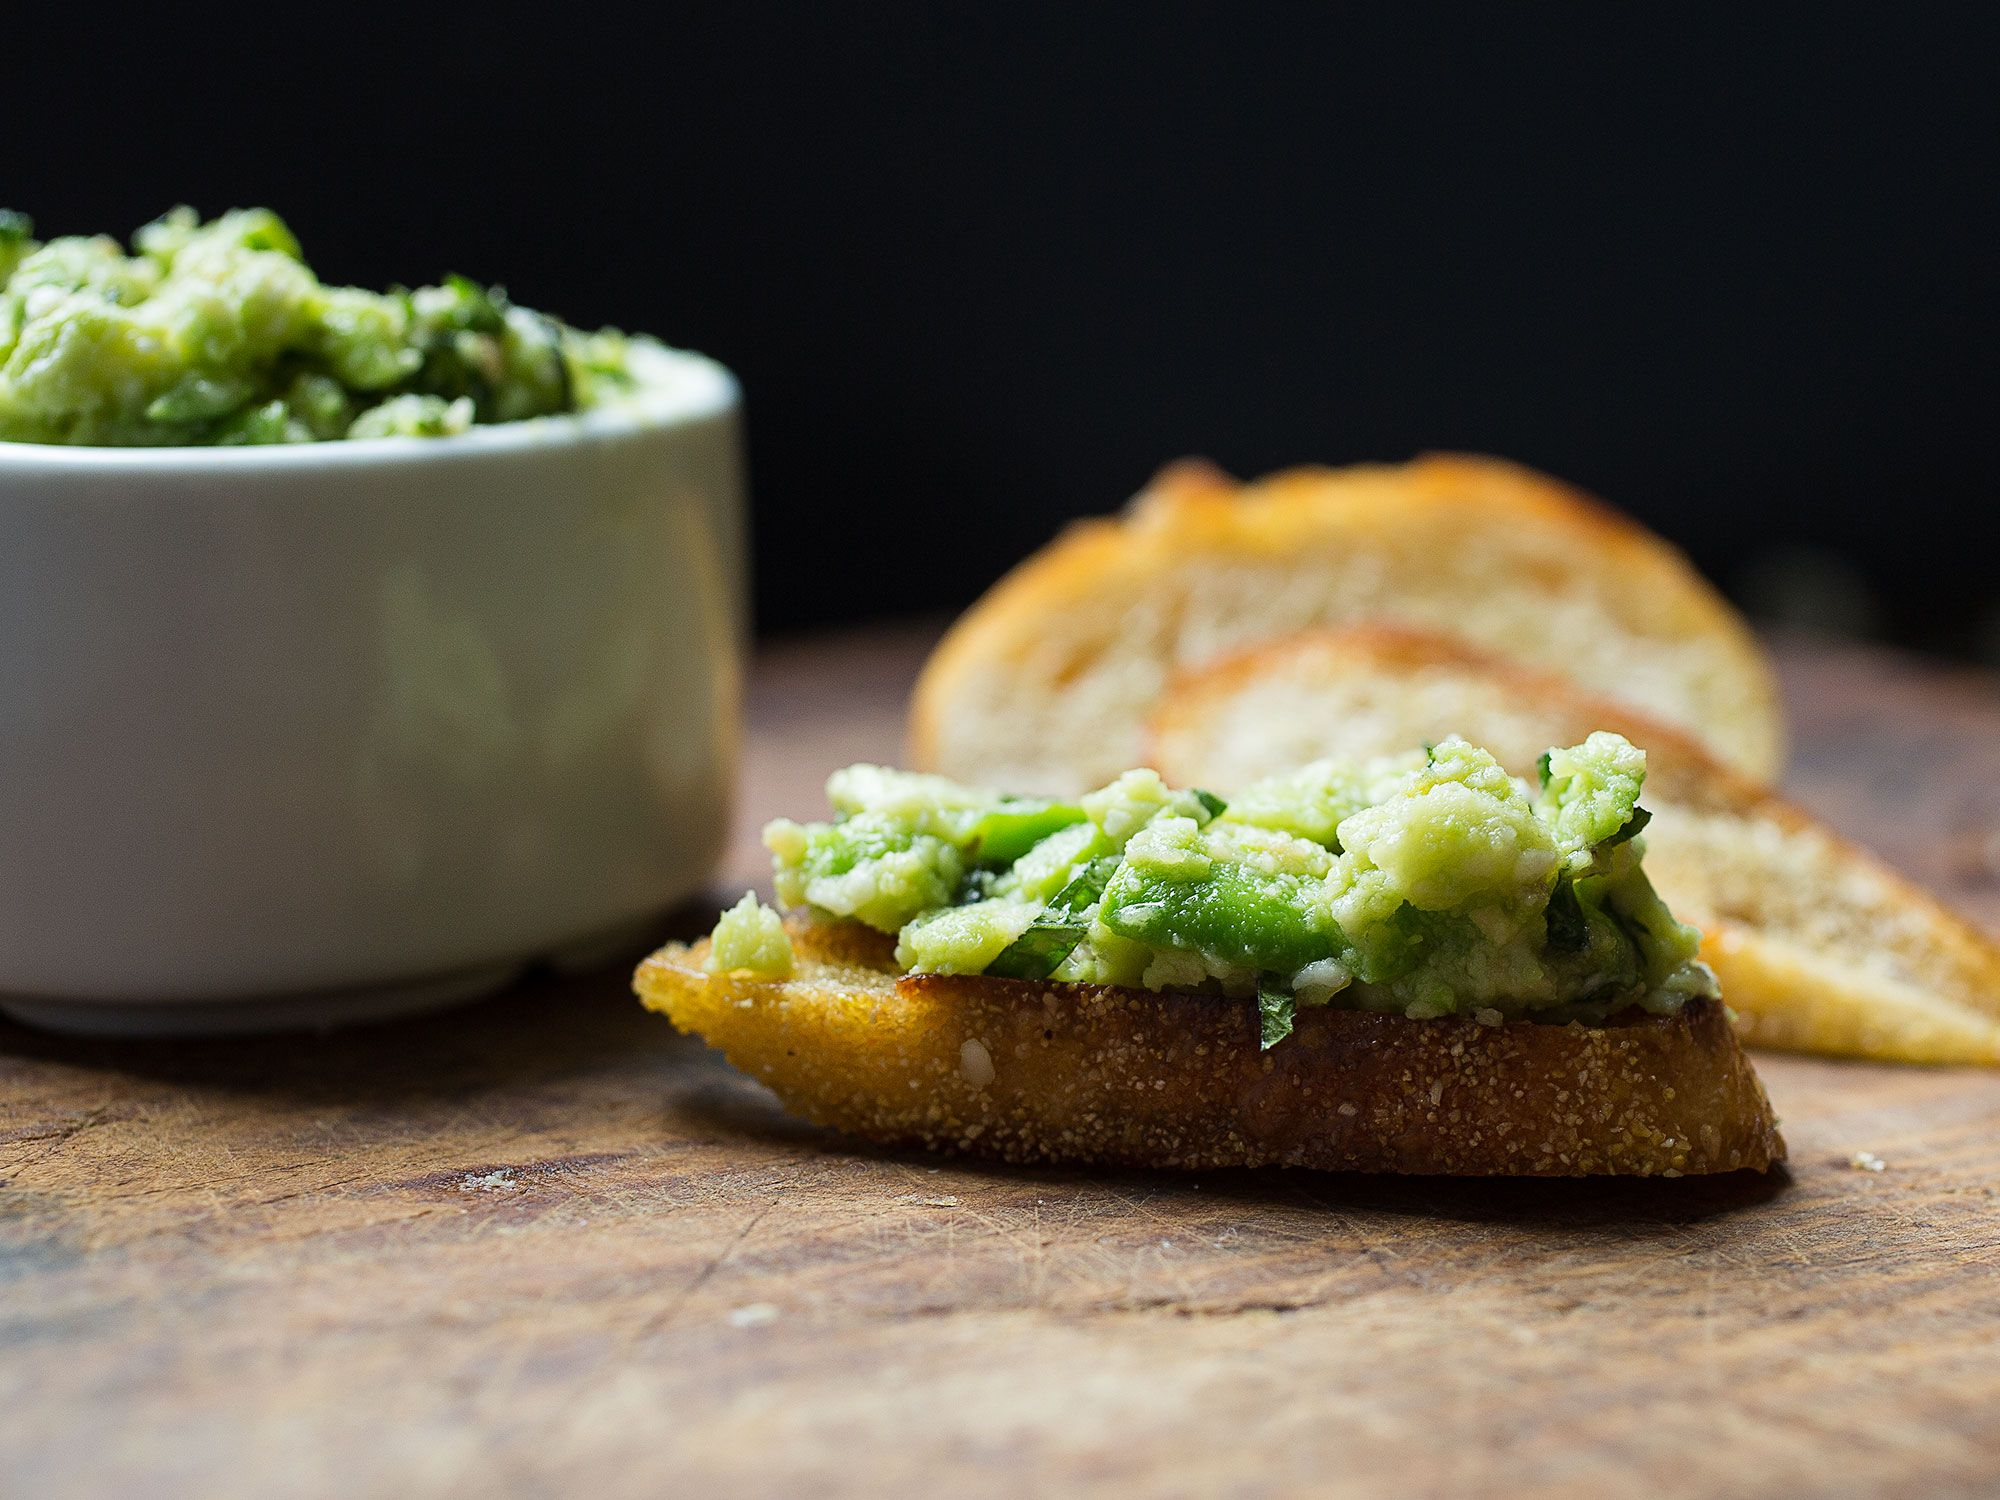 "When purchasing fresh fava beans, look for bright green pods that are free of yellow patches. Large beans are starchy and firm, while smaller ones are sweeter and more tender. If you are buying shelled beans, select beans with a smooth surface. Get the recipe for <a href=""https://www.saveur.com/fava-bean-pesto-recipe/"">Fava-Mint Pesto</a>"